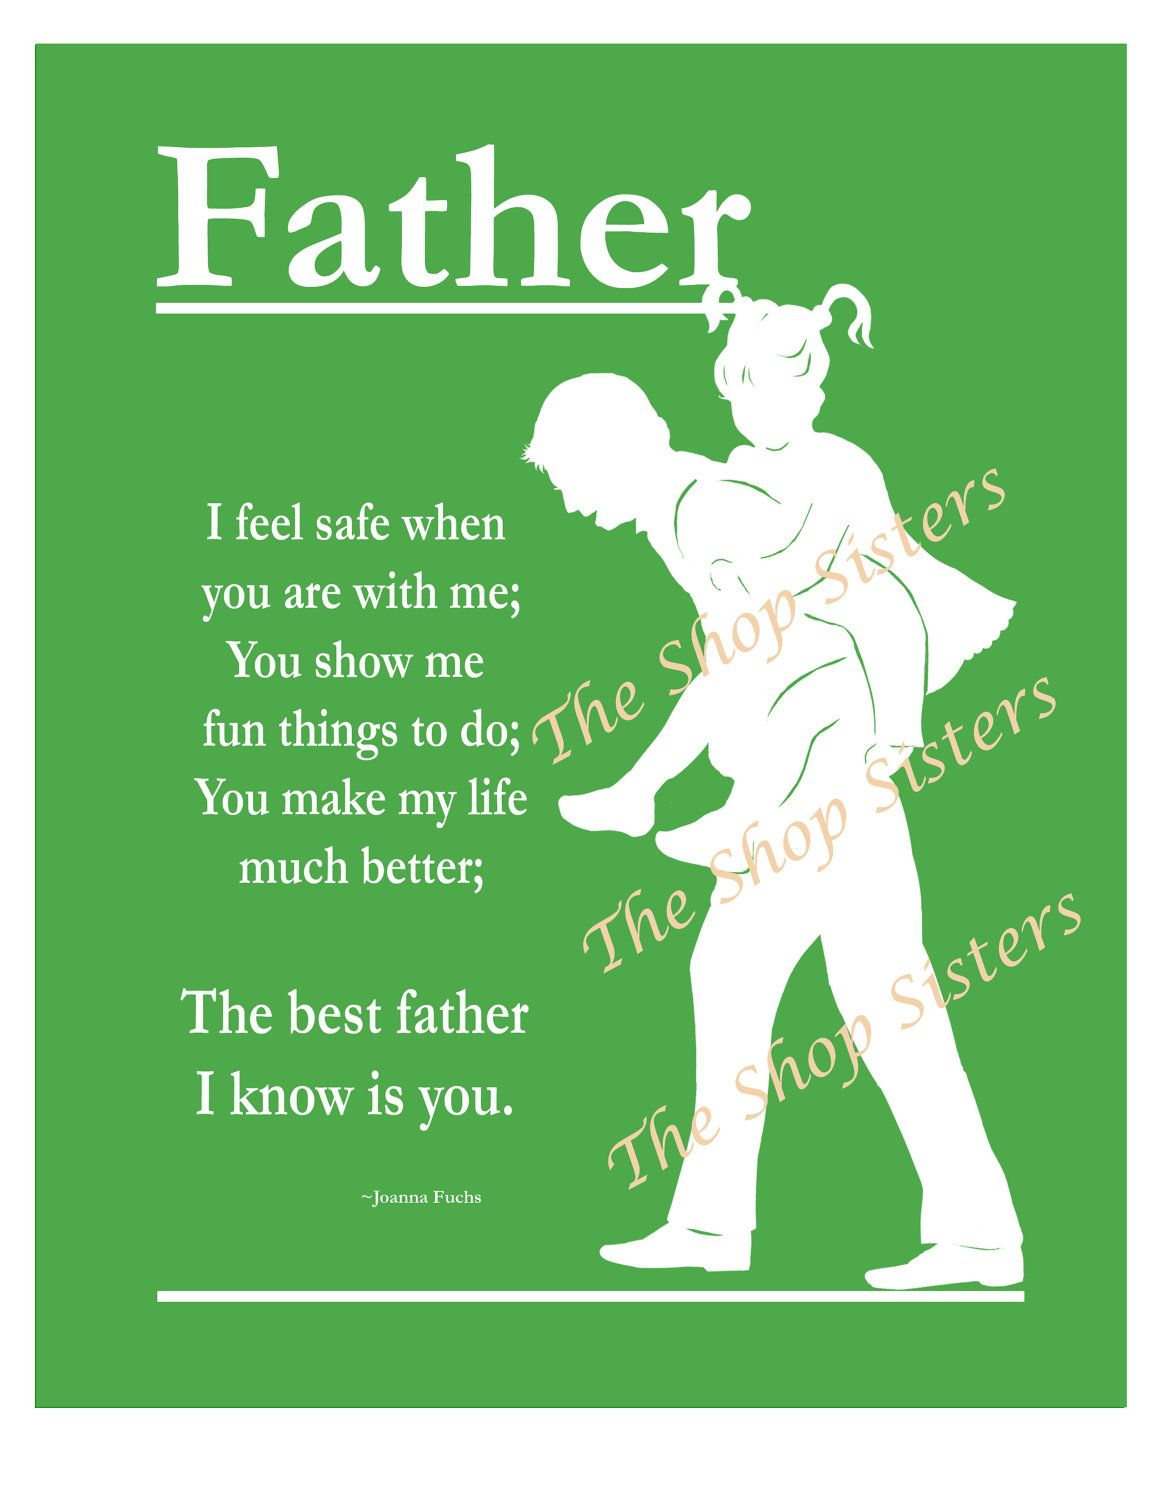 Funny fathers day messages from daughter events pinterest father daughter fathers day poem dad silhouette by theshopsisters kristyandbryce Images